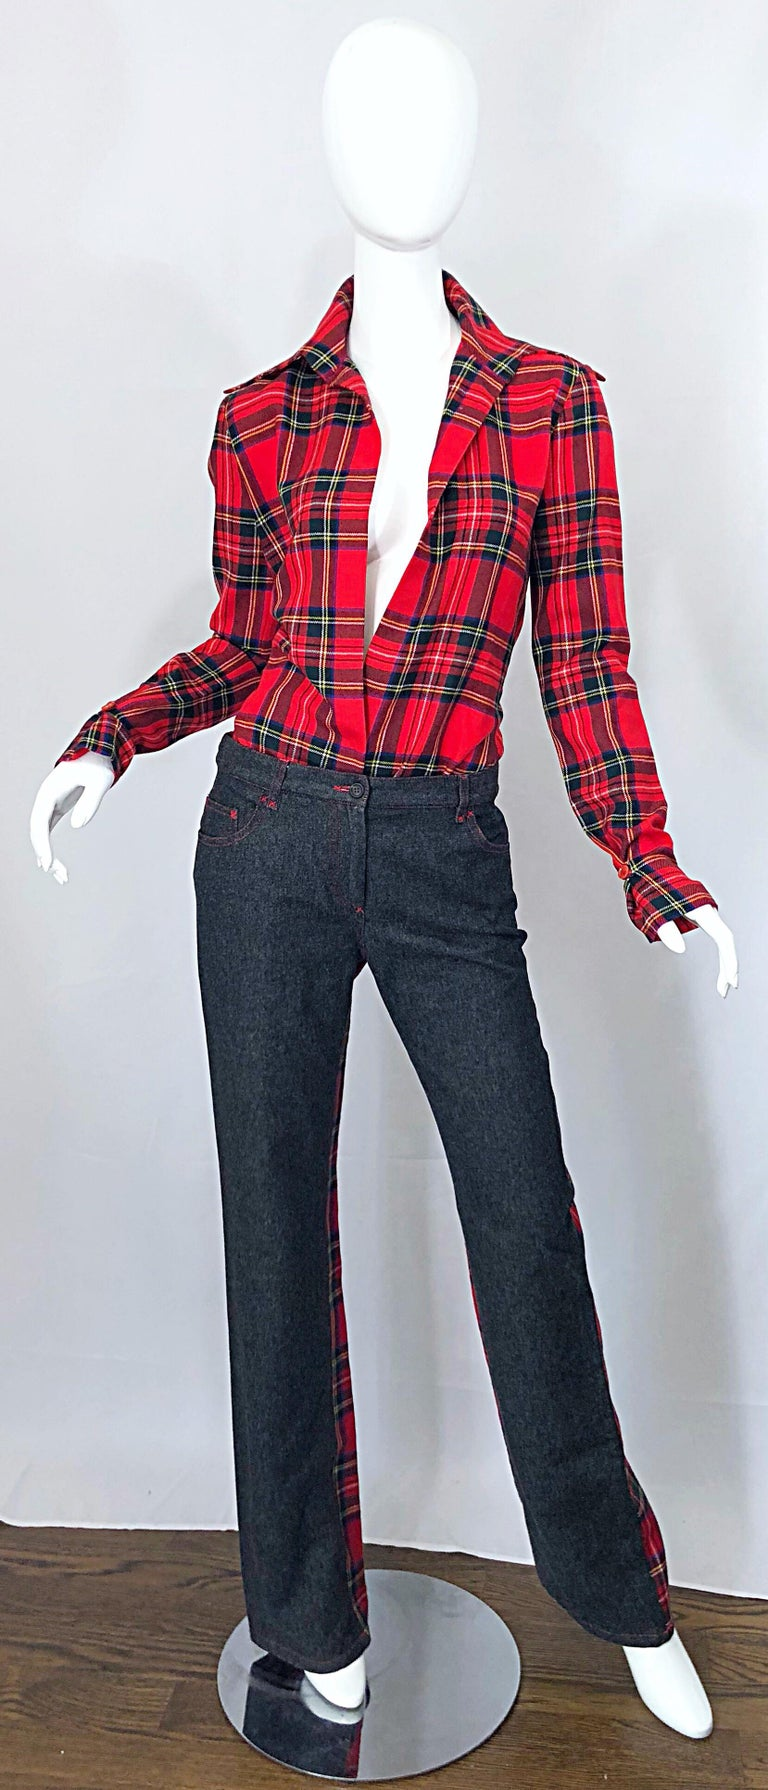 Rare nad sexy vintage late 90s DOLCE & GABBANA red tartan virgin wool plunging top with matching denim and red tartan plaid flared boot cut jeans! Top features a plunging neckline with an exaggerated collar and tapered sleeve cuffs. Low rise